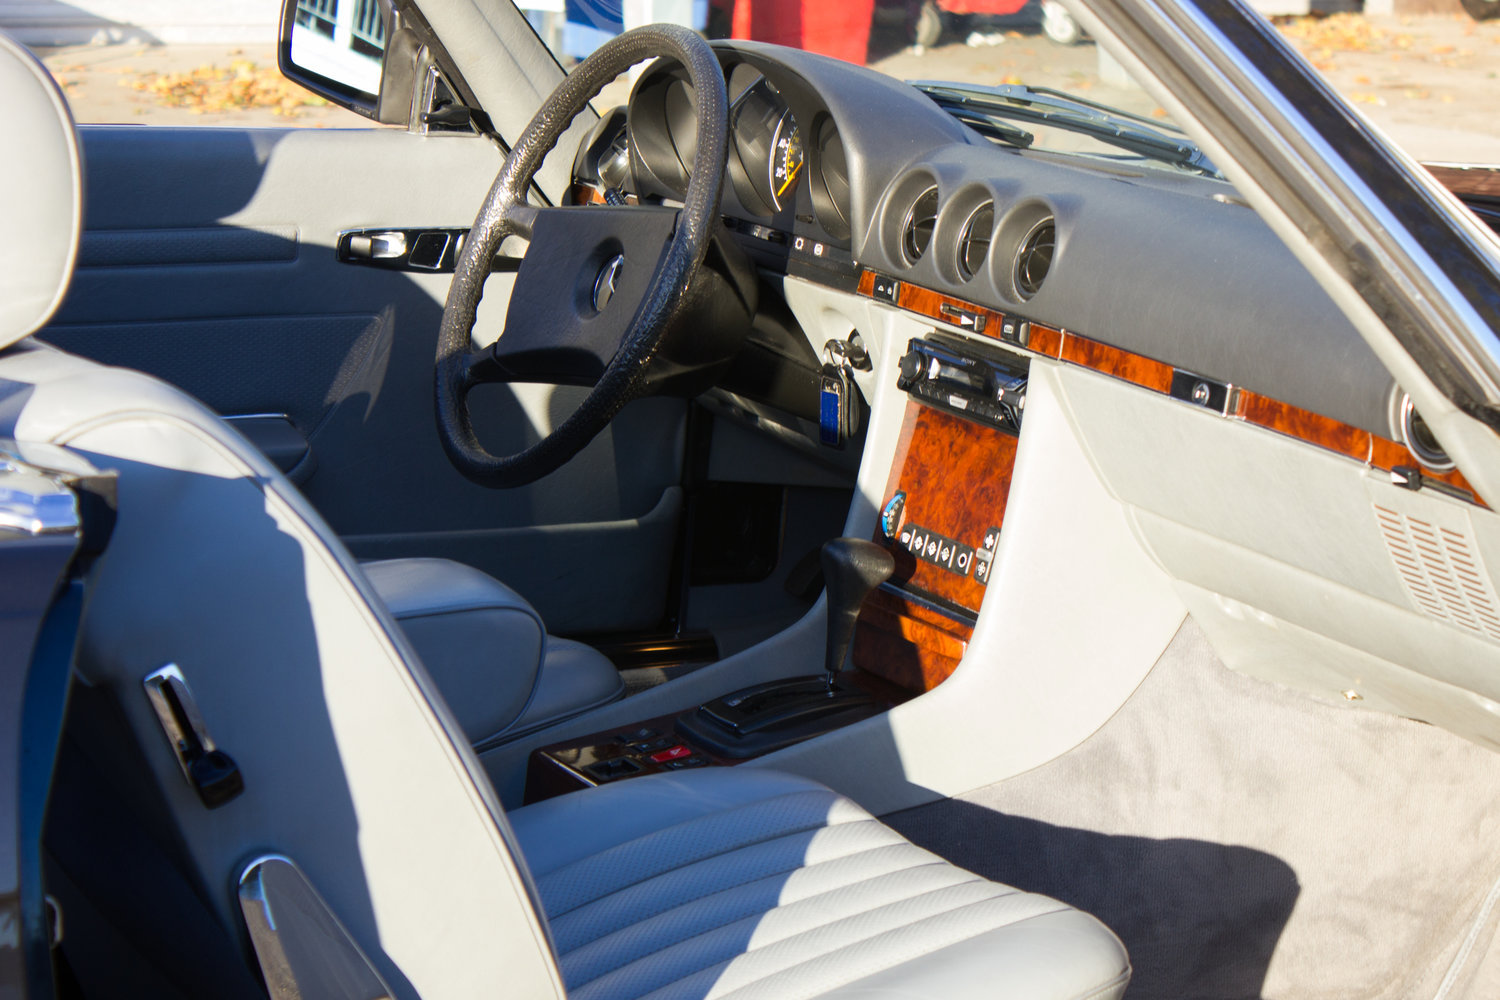 1985 Mercedes-Benz 500SL - LHD, AC, Heated Seats, 43k Miles For Sale (picture 5 of 6)